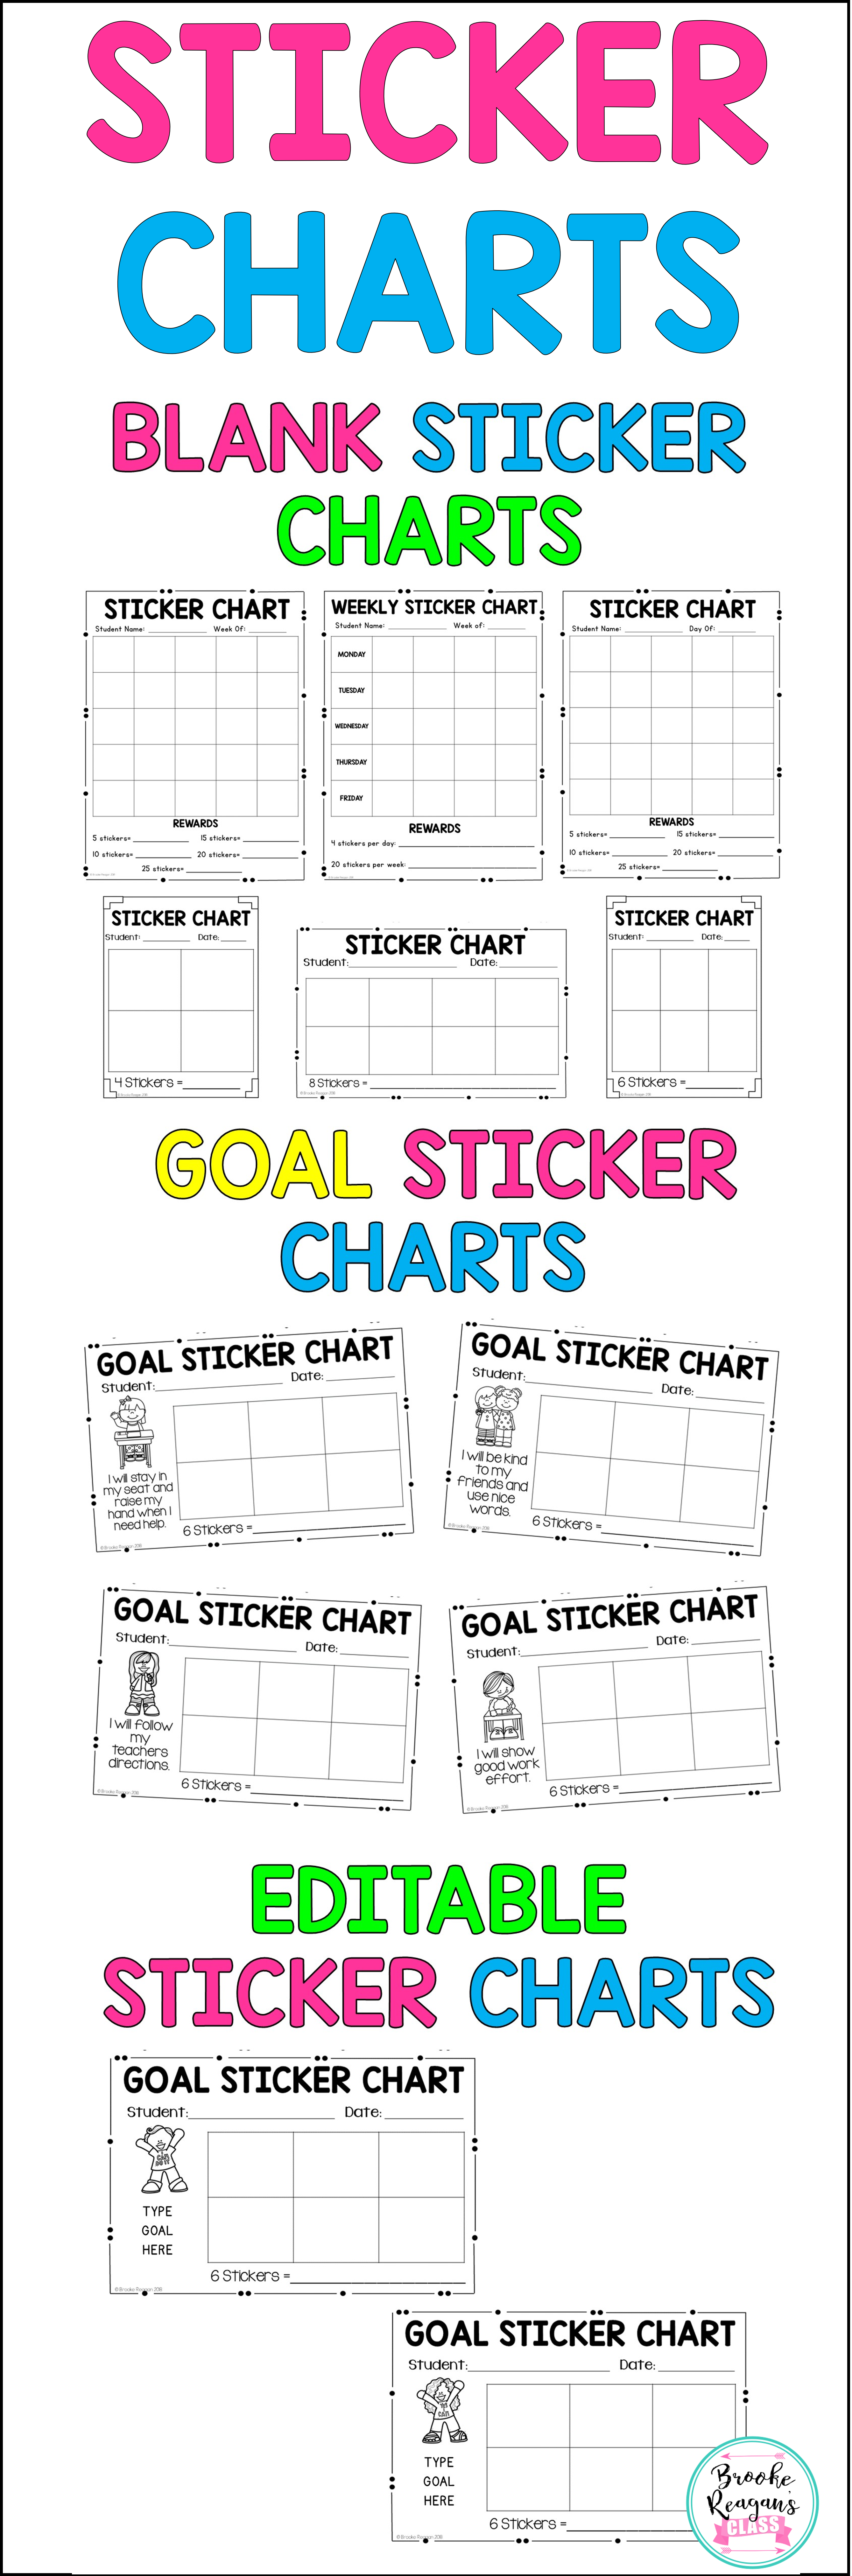 Sticker And Tally Charts Blank And Goal Sticker Charts